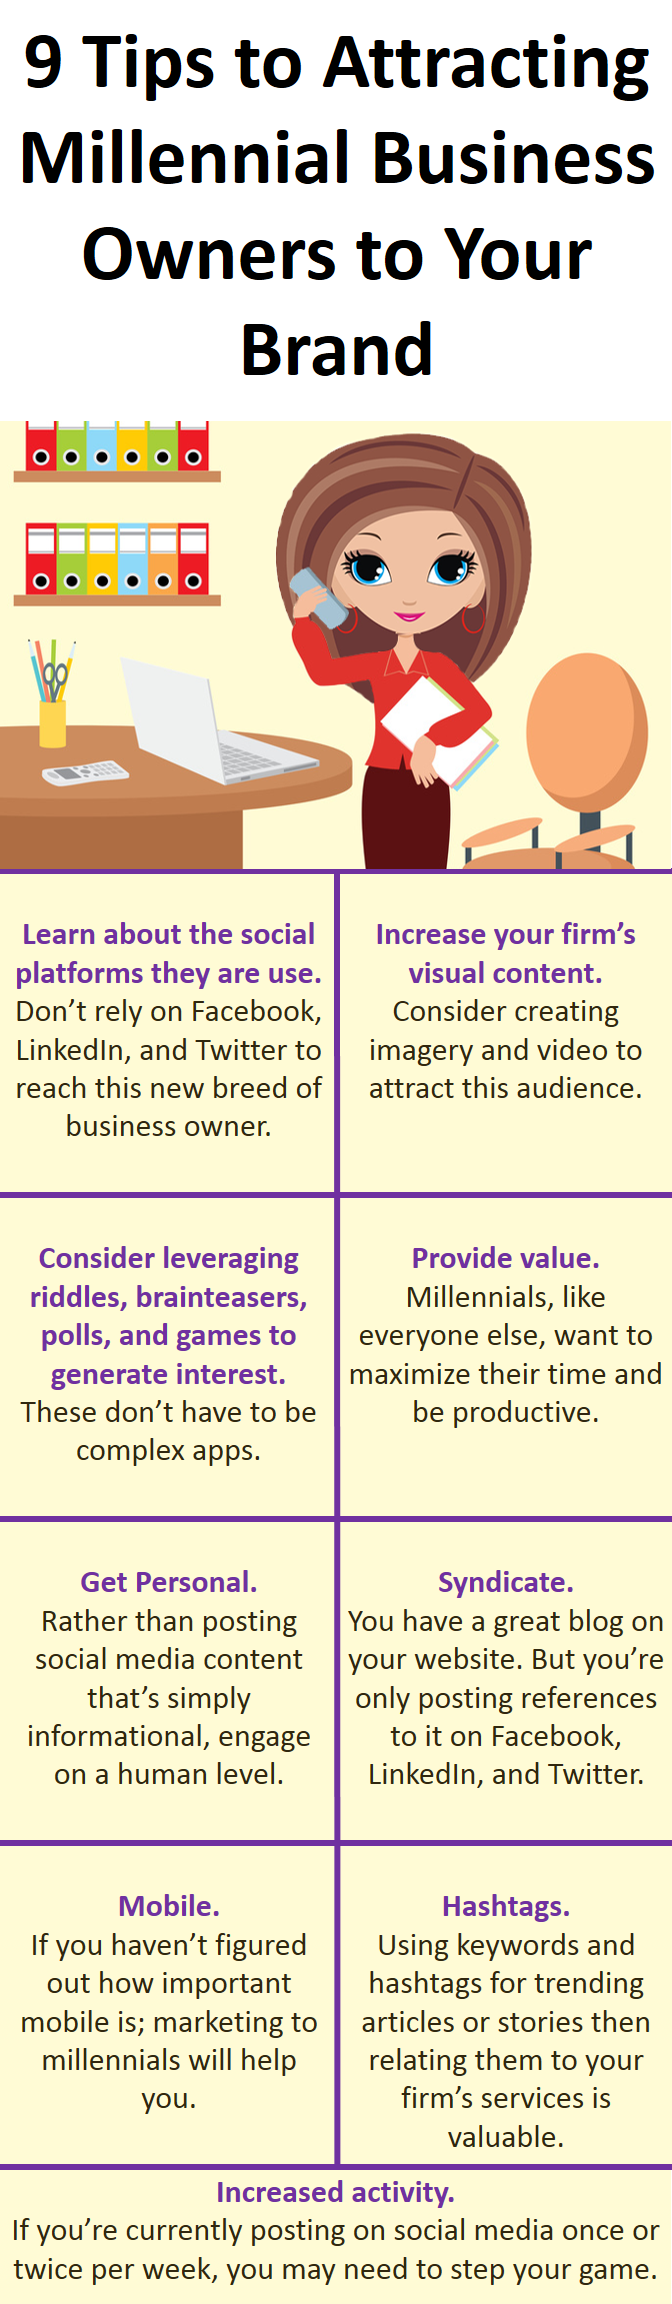 9 tips to attract millennial business owners